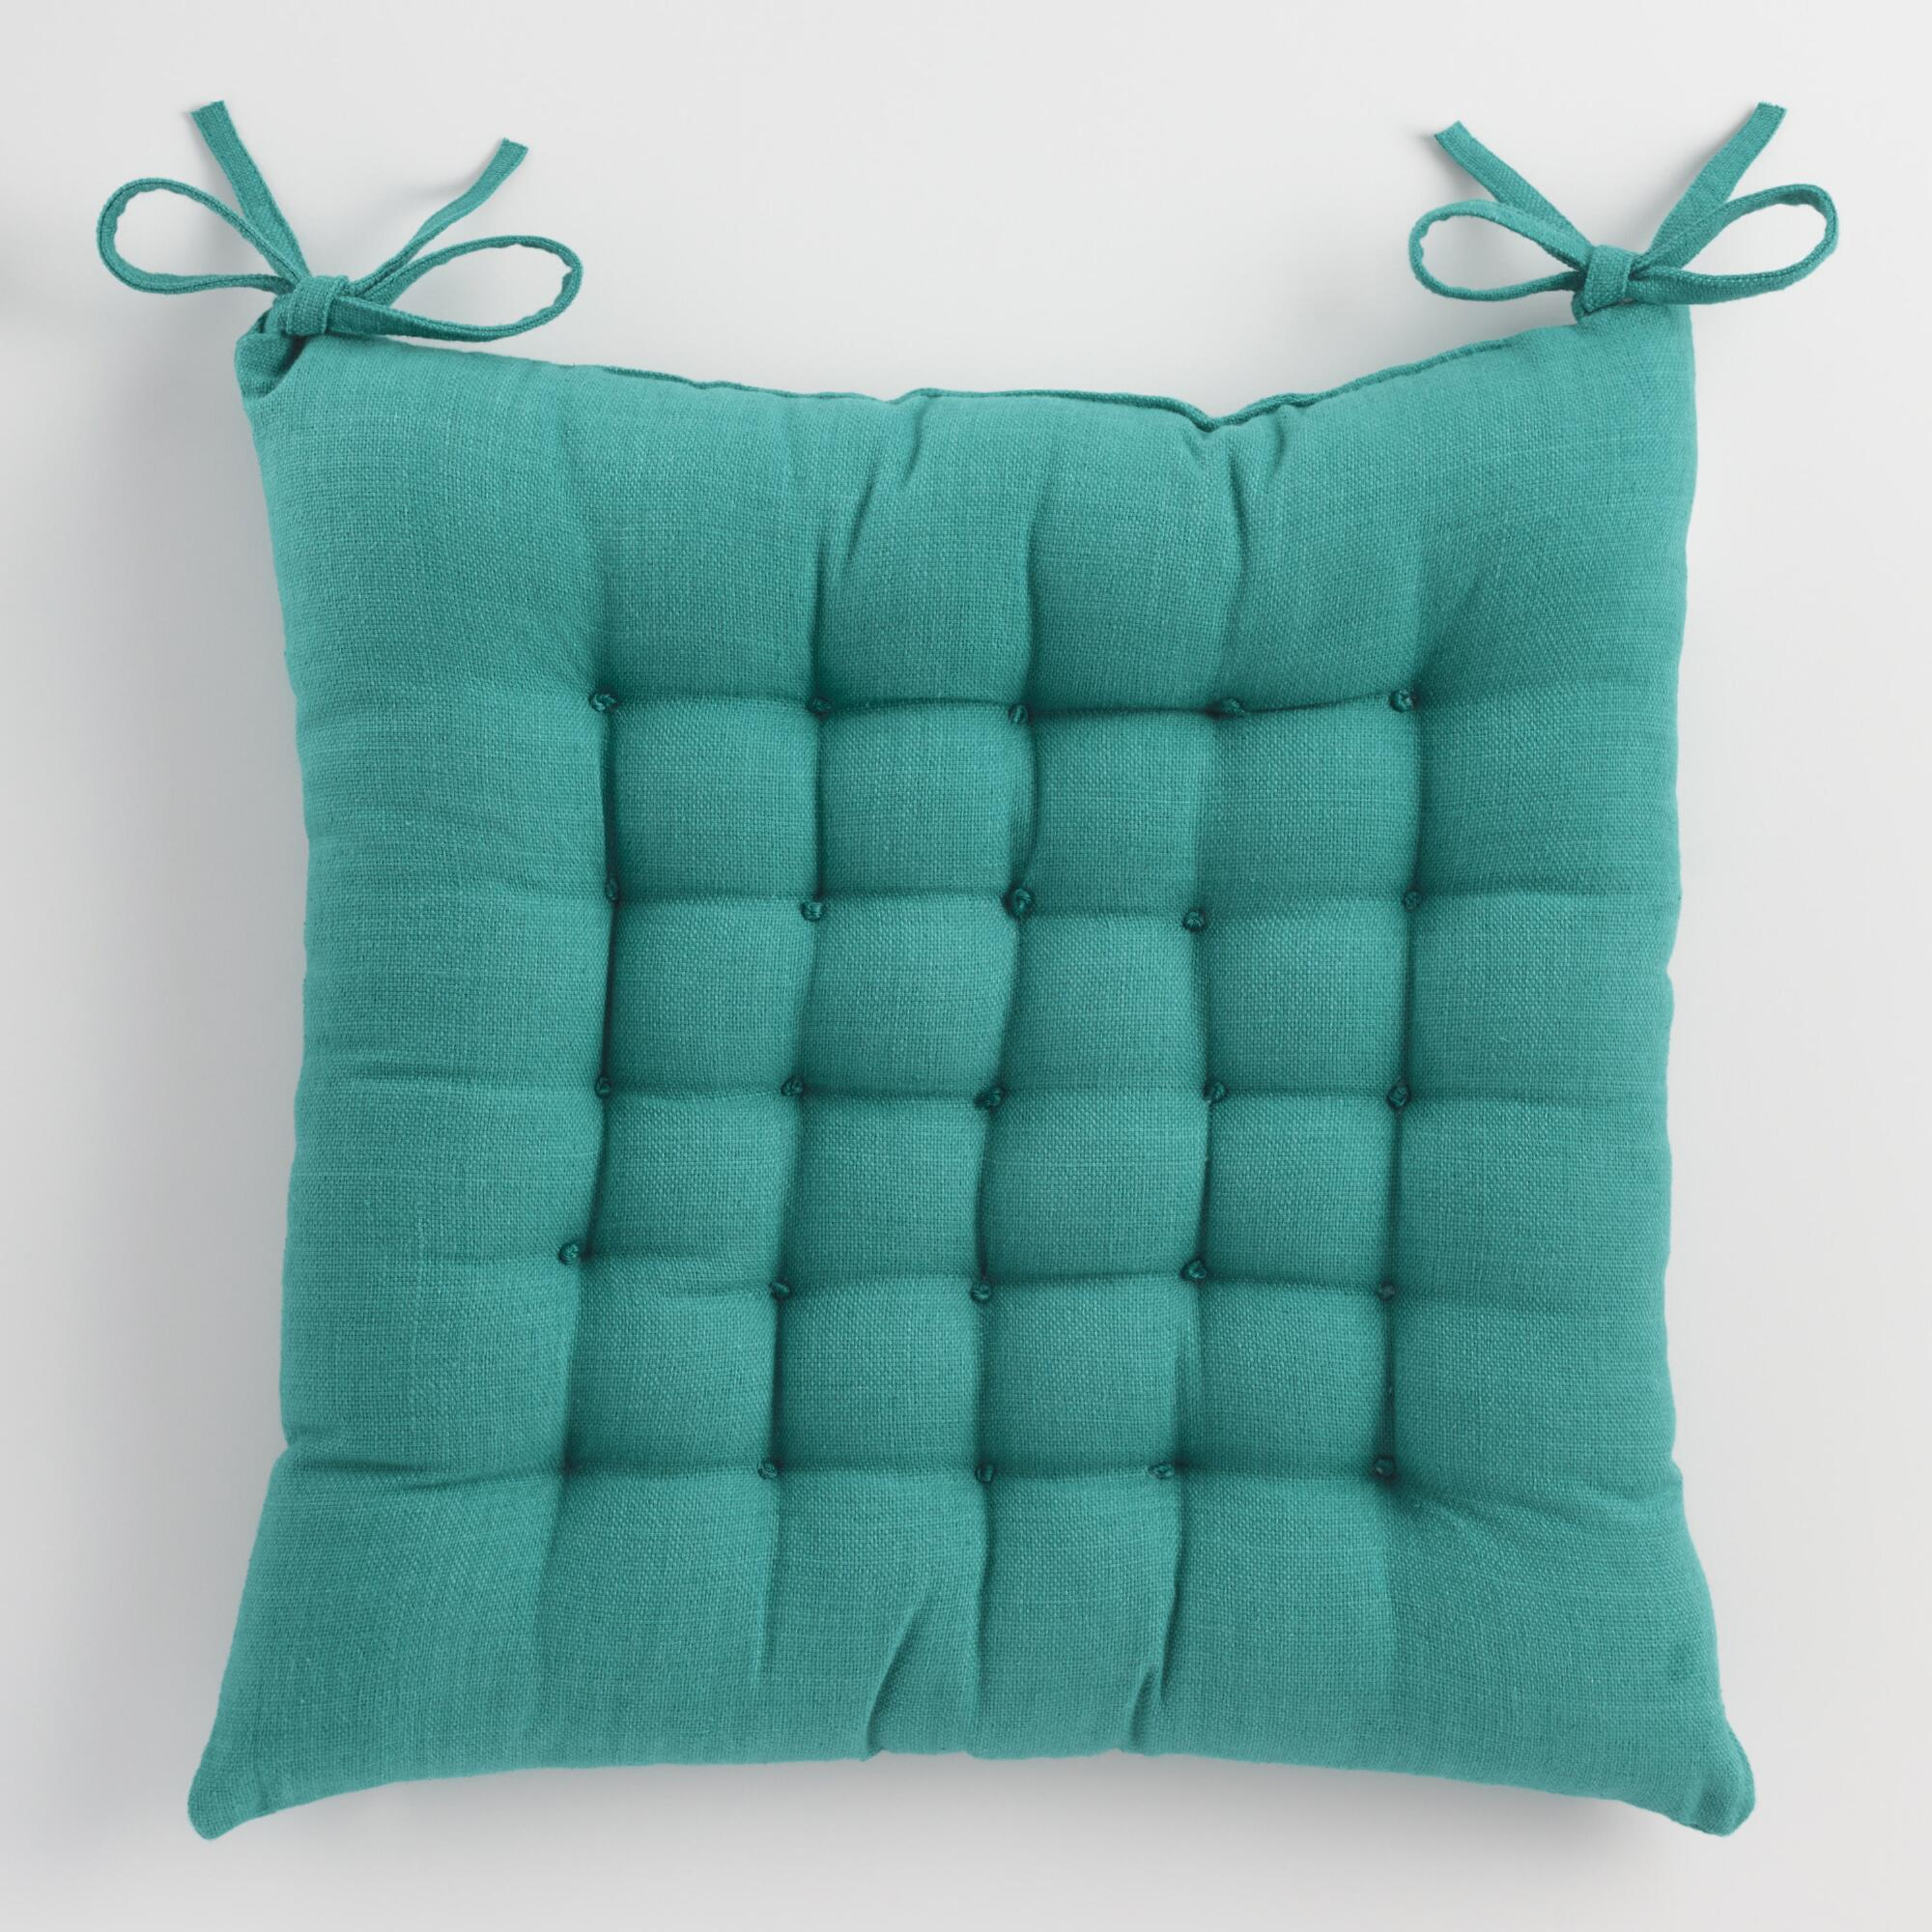 Blue dasutti chair cushion world market for Chair pillow